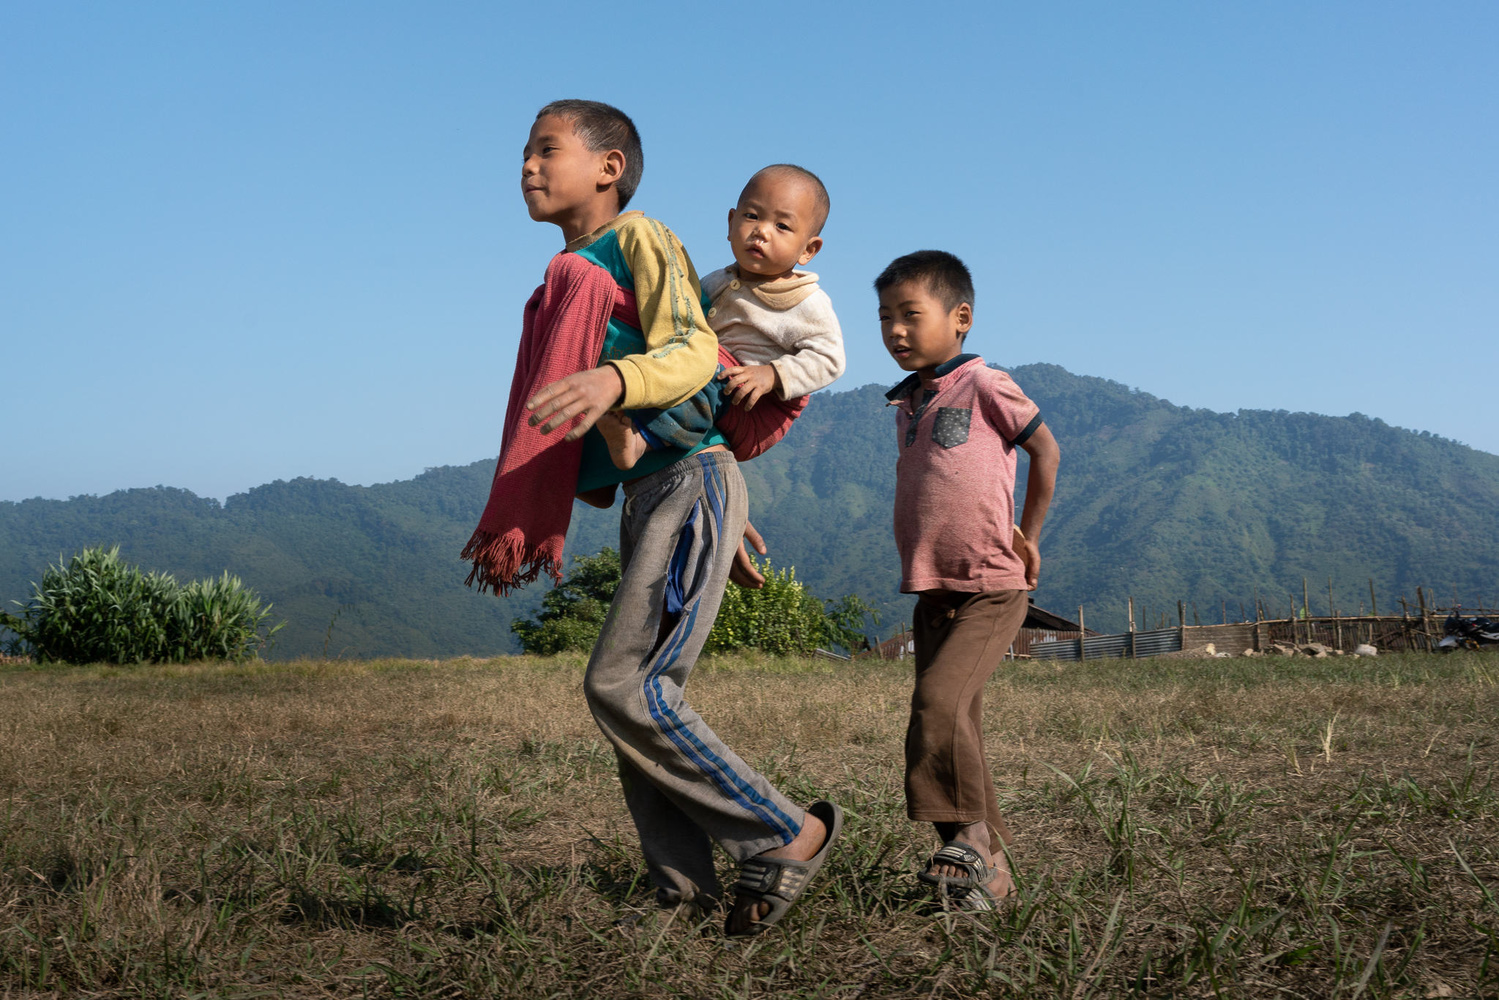 Three young children from a local Nagaland tribe